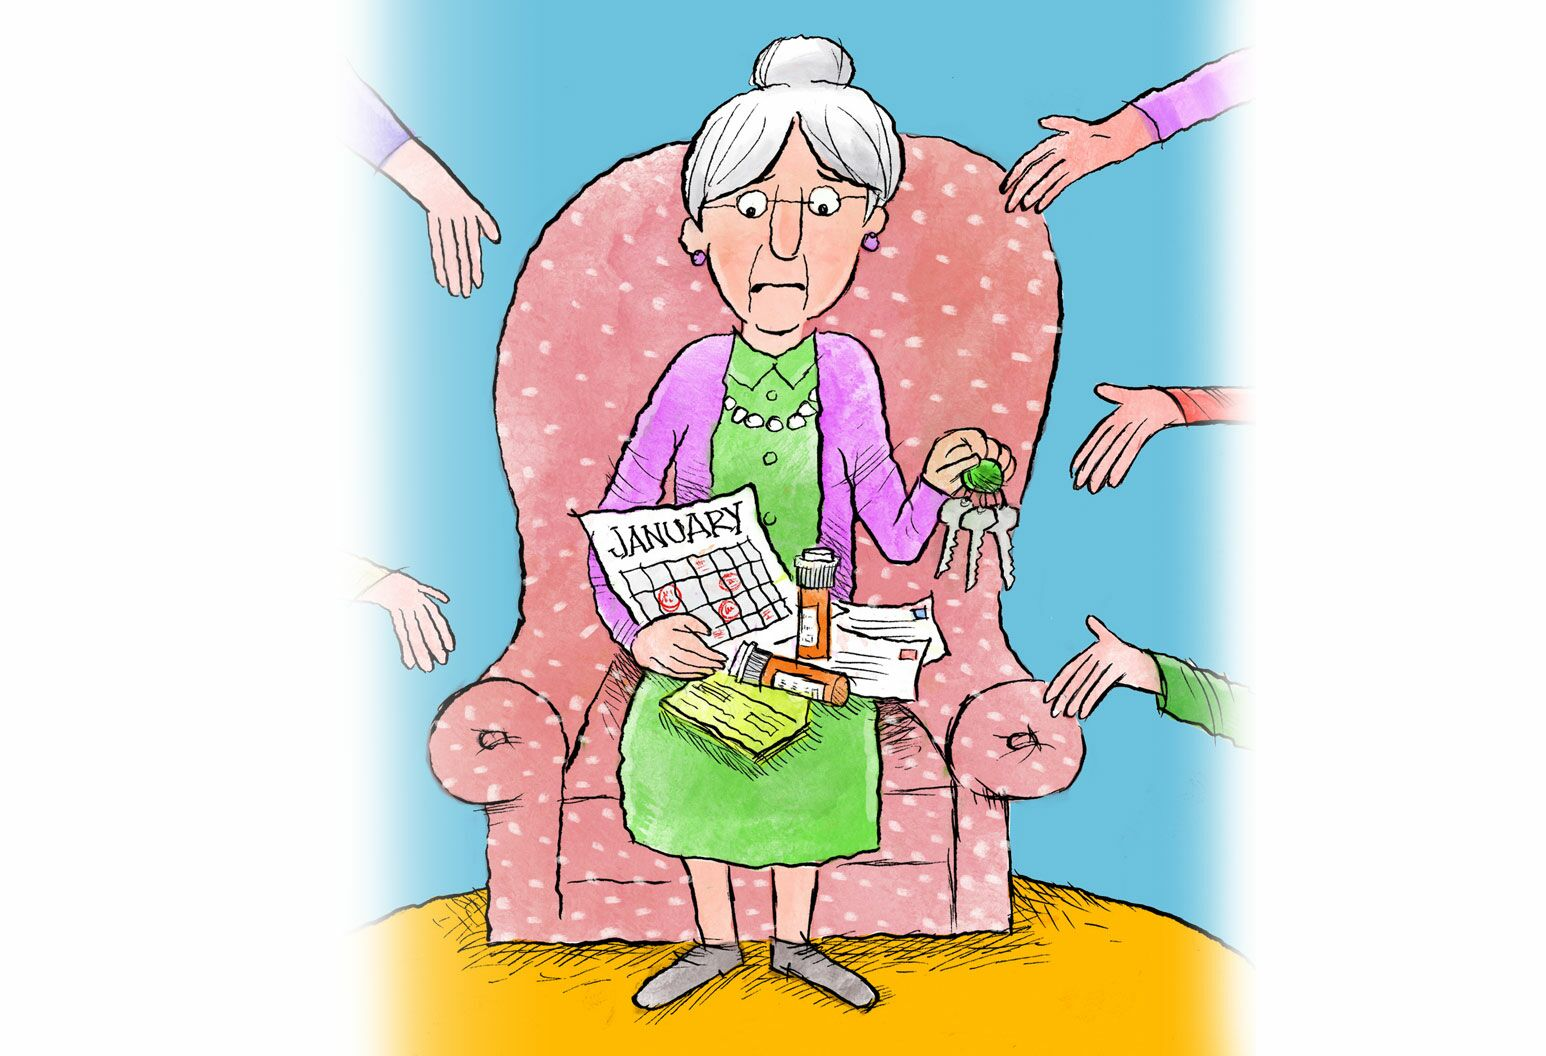 Illustration by Stacy Curtis - A cartoon drawing of a grey haired grandmother in a green dress and pink cardigan being handed pills, a calendar, and mail. There are hands reaching out to her from both sides.